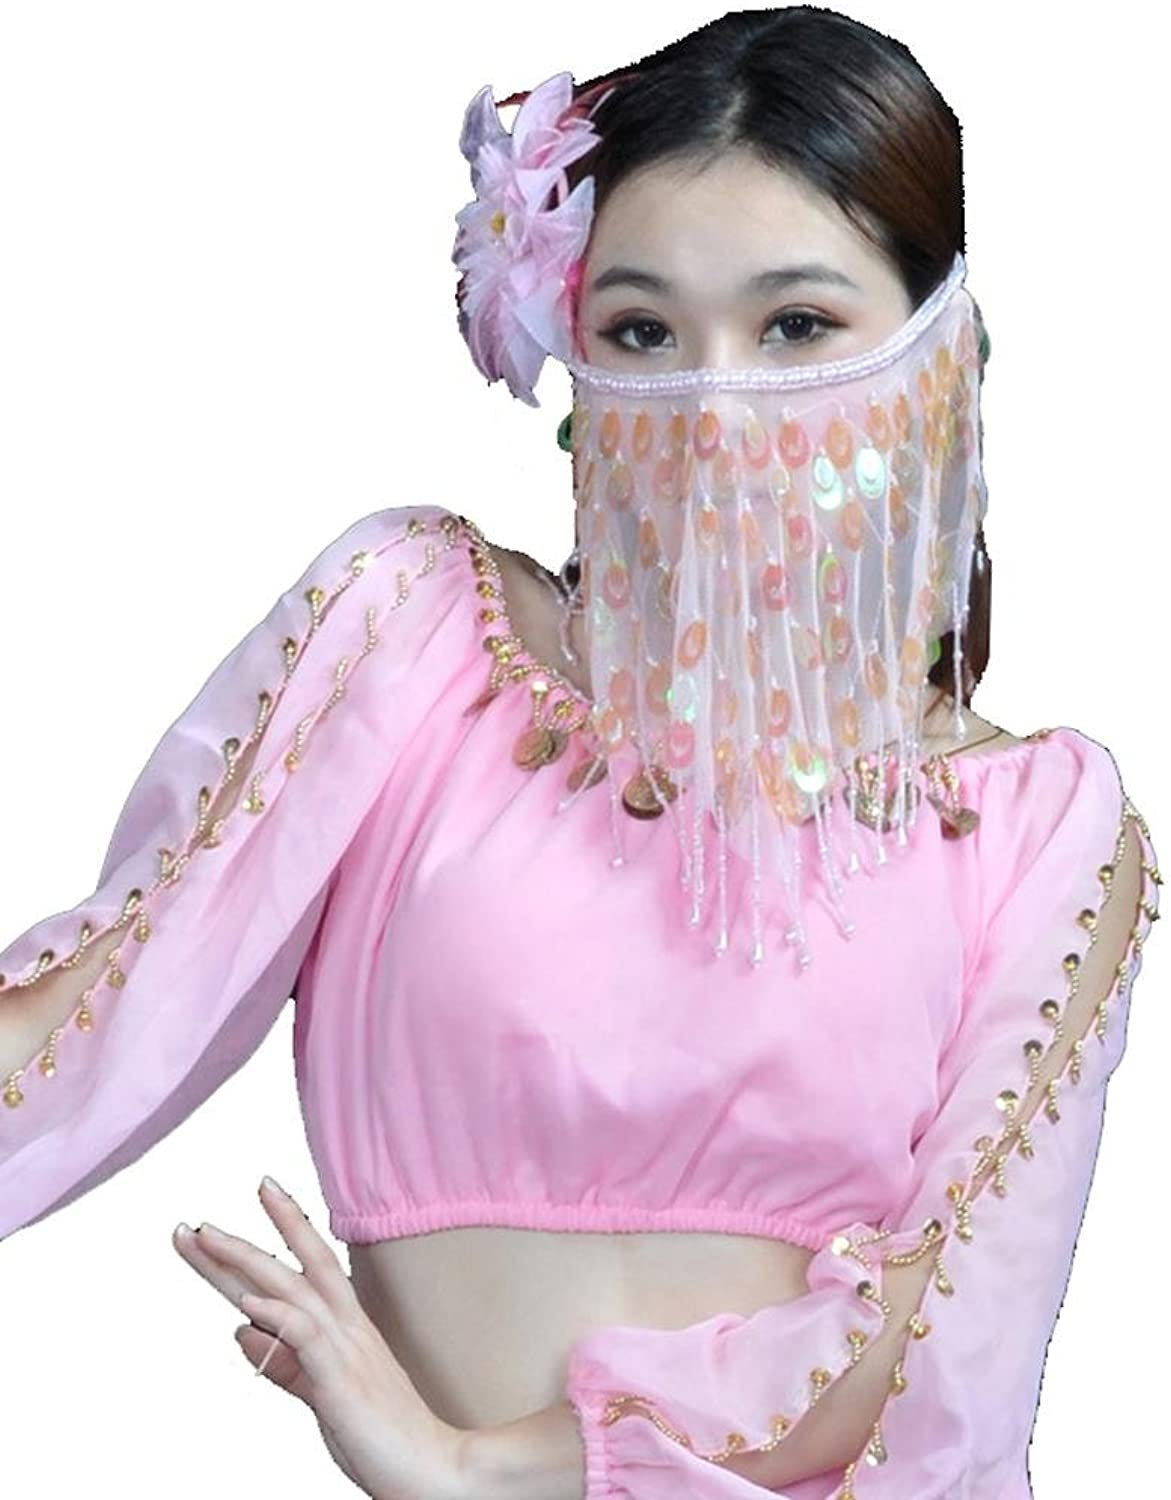 Byjia Belly Dance Tribal Face Veil with Beads Peacock Style Performance Accessories